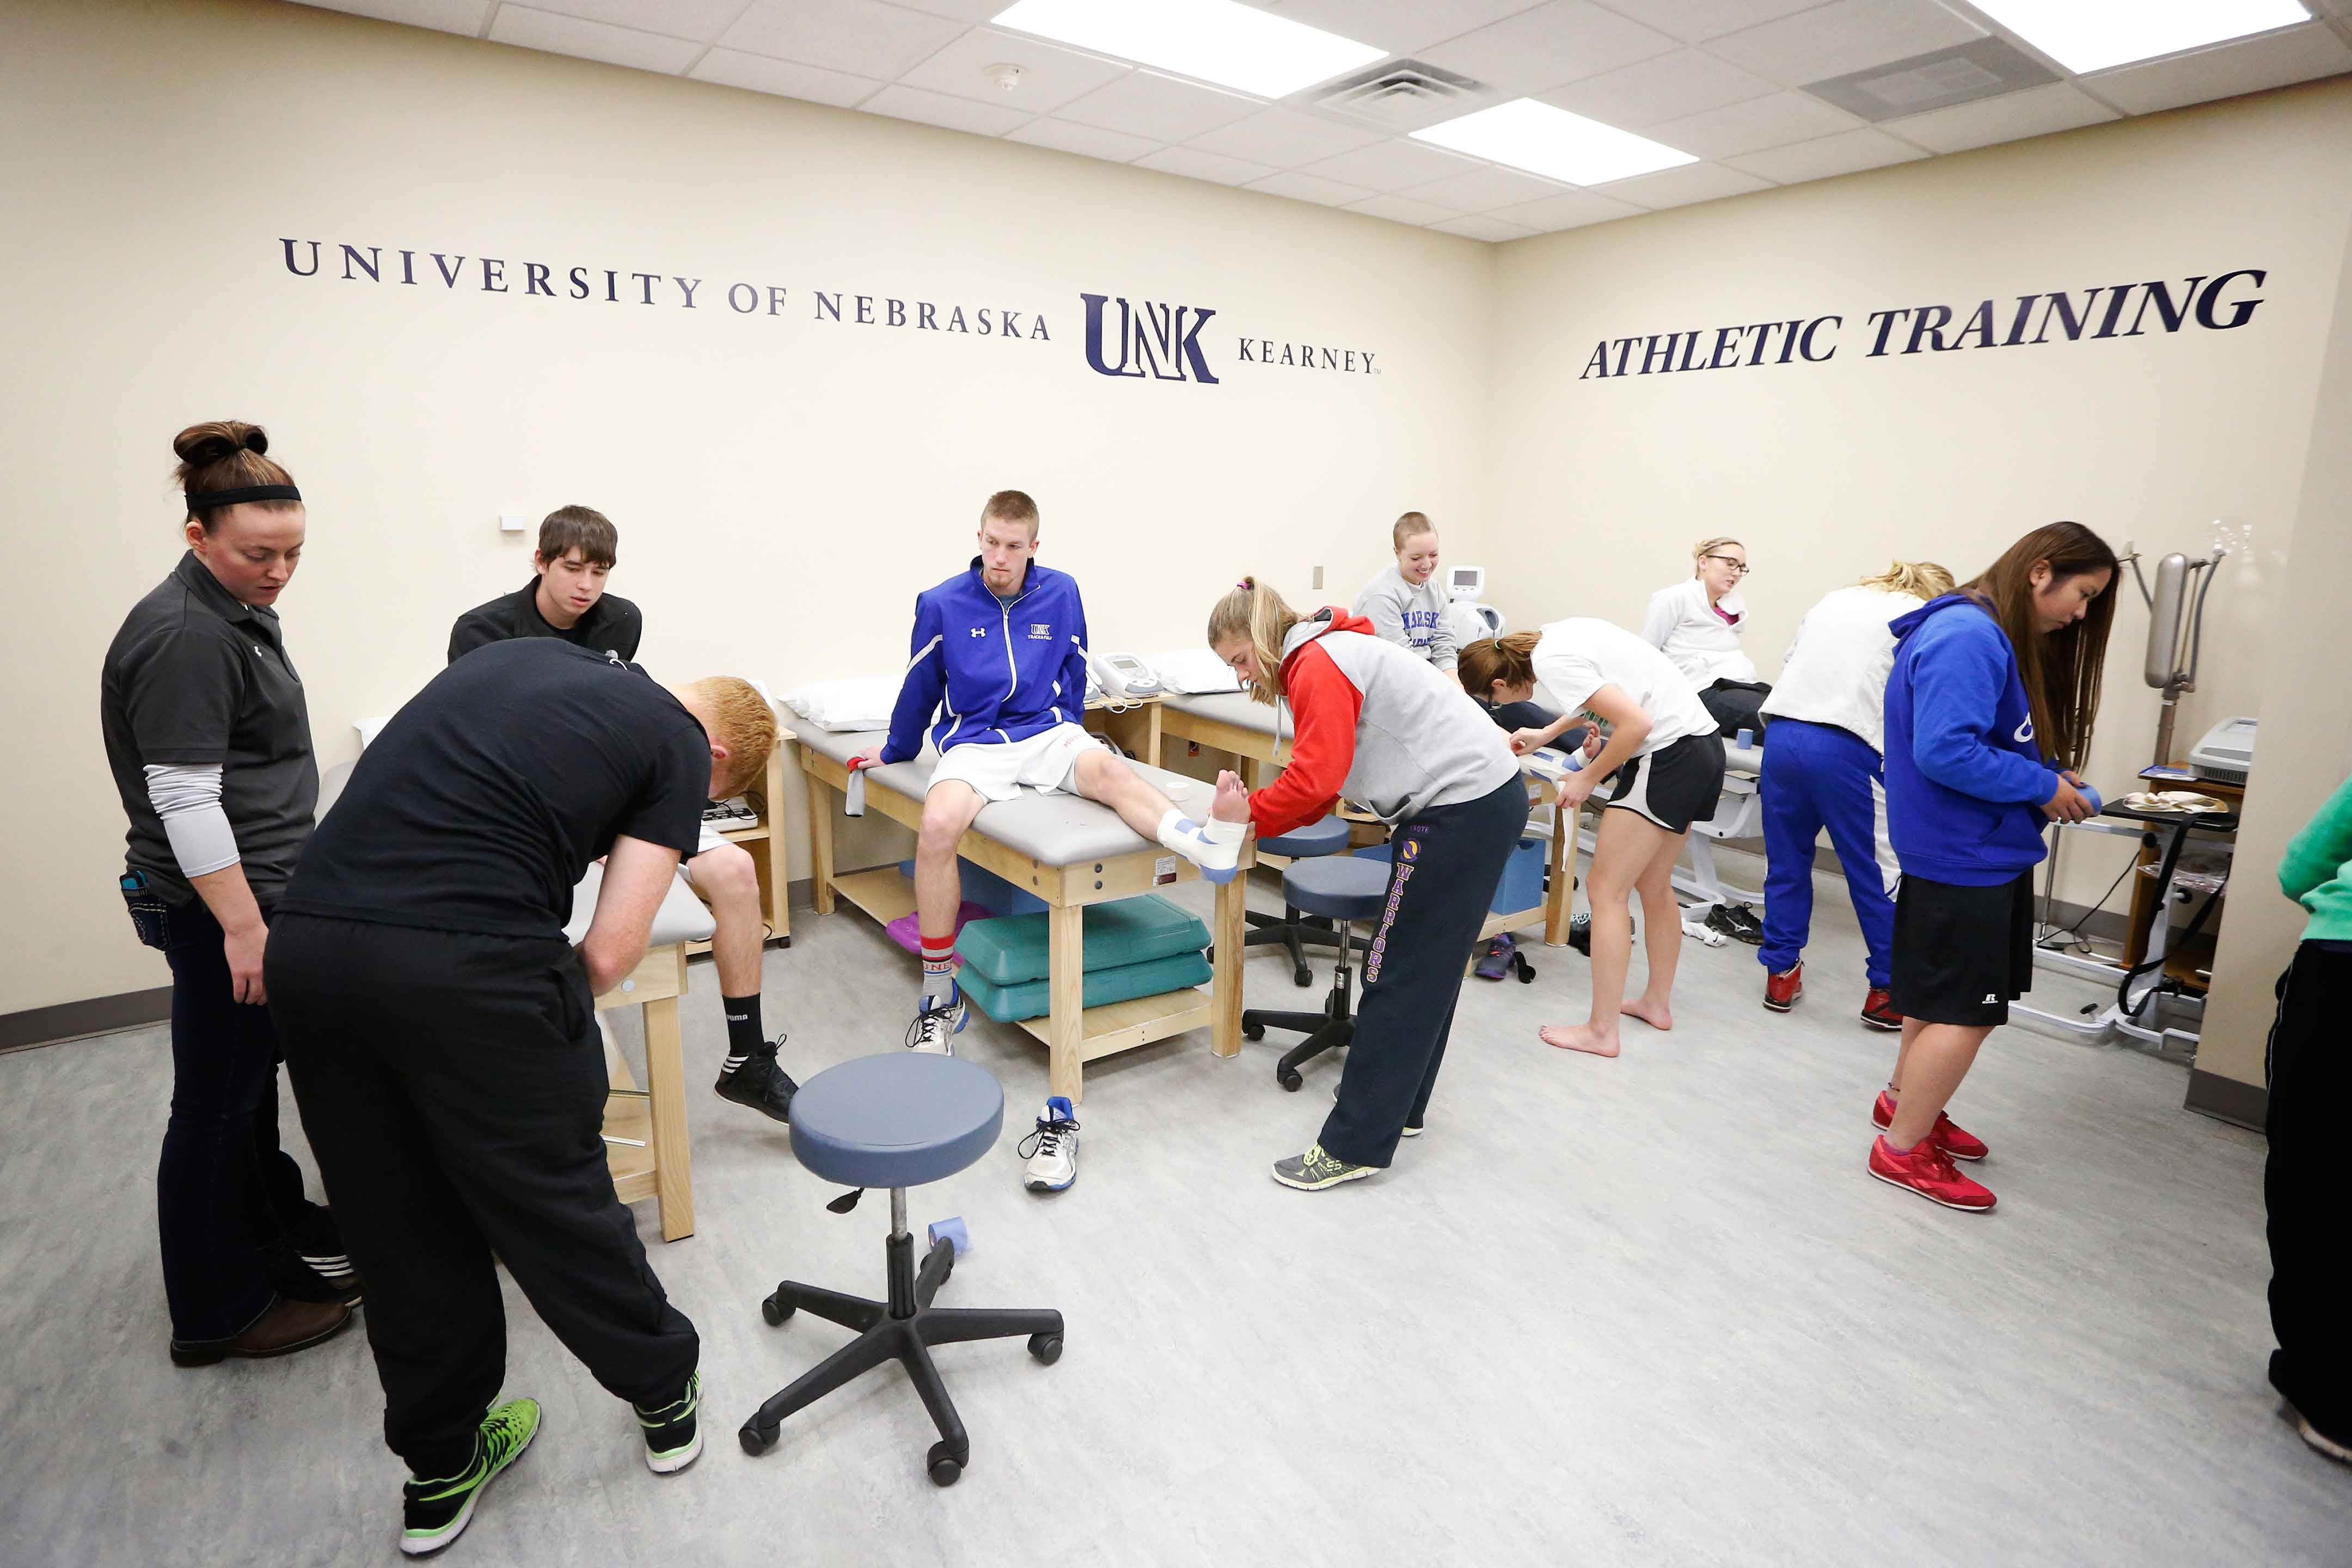 New Athletic Training Classroom Lab At Unk Opens